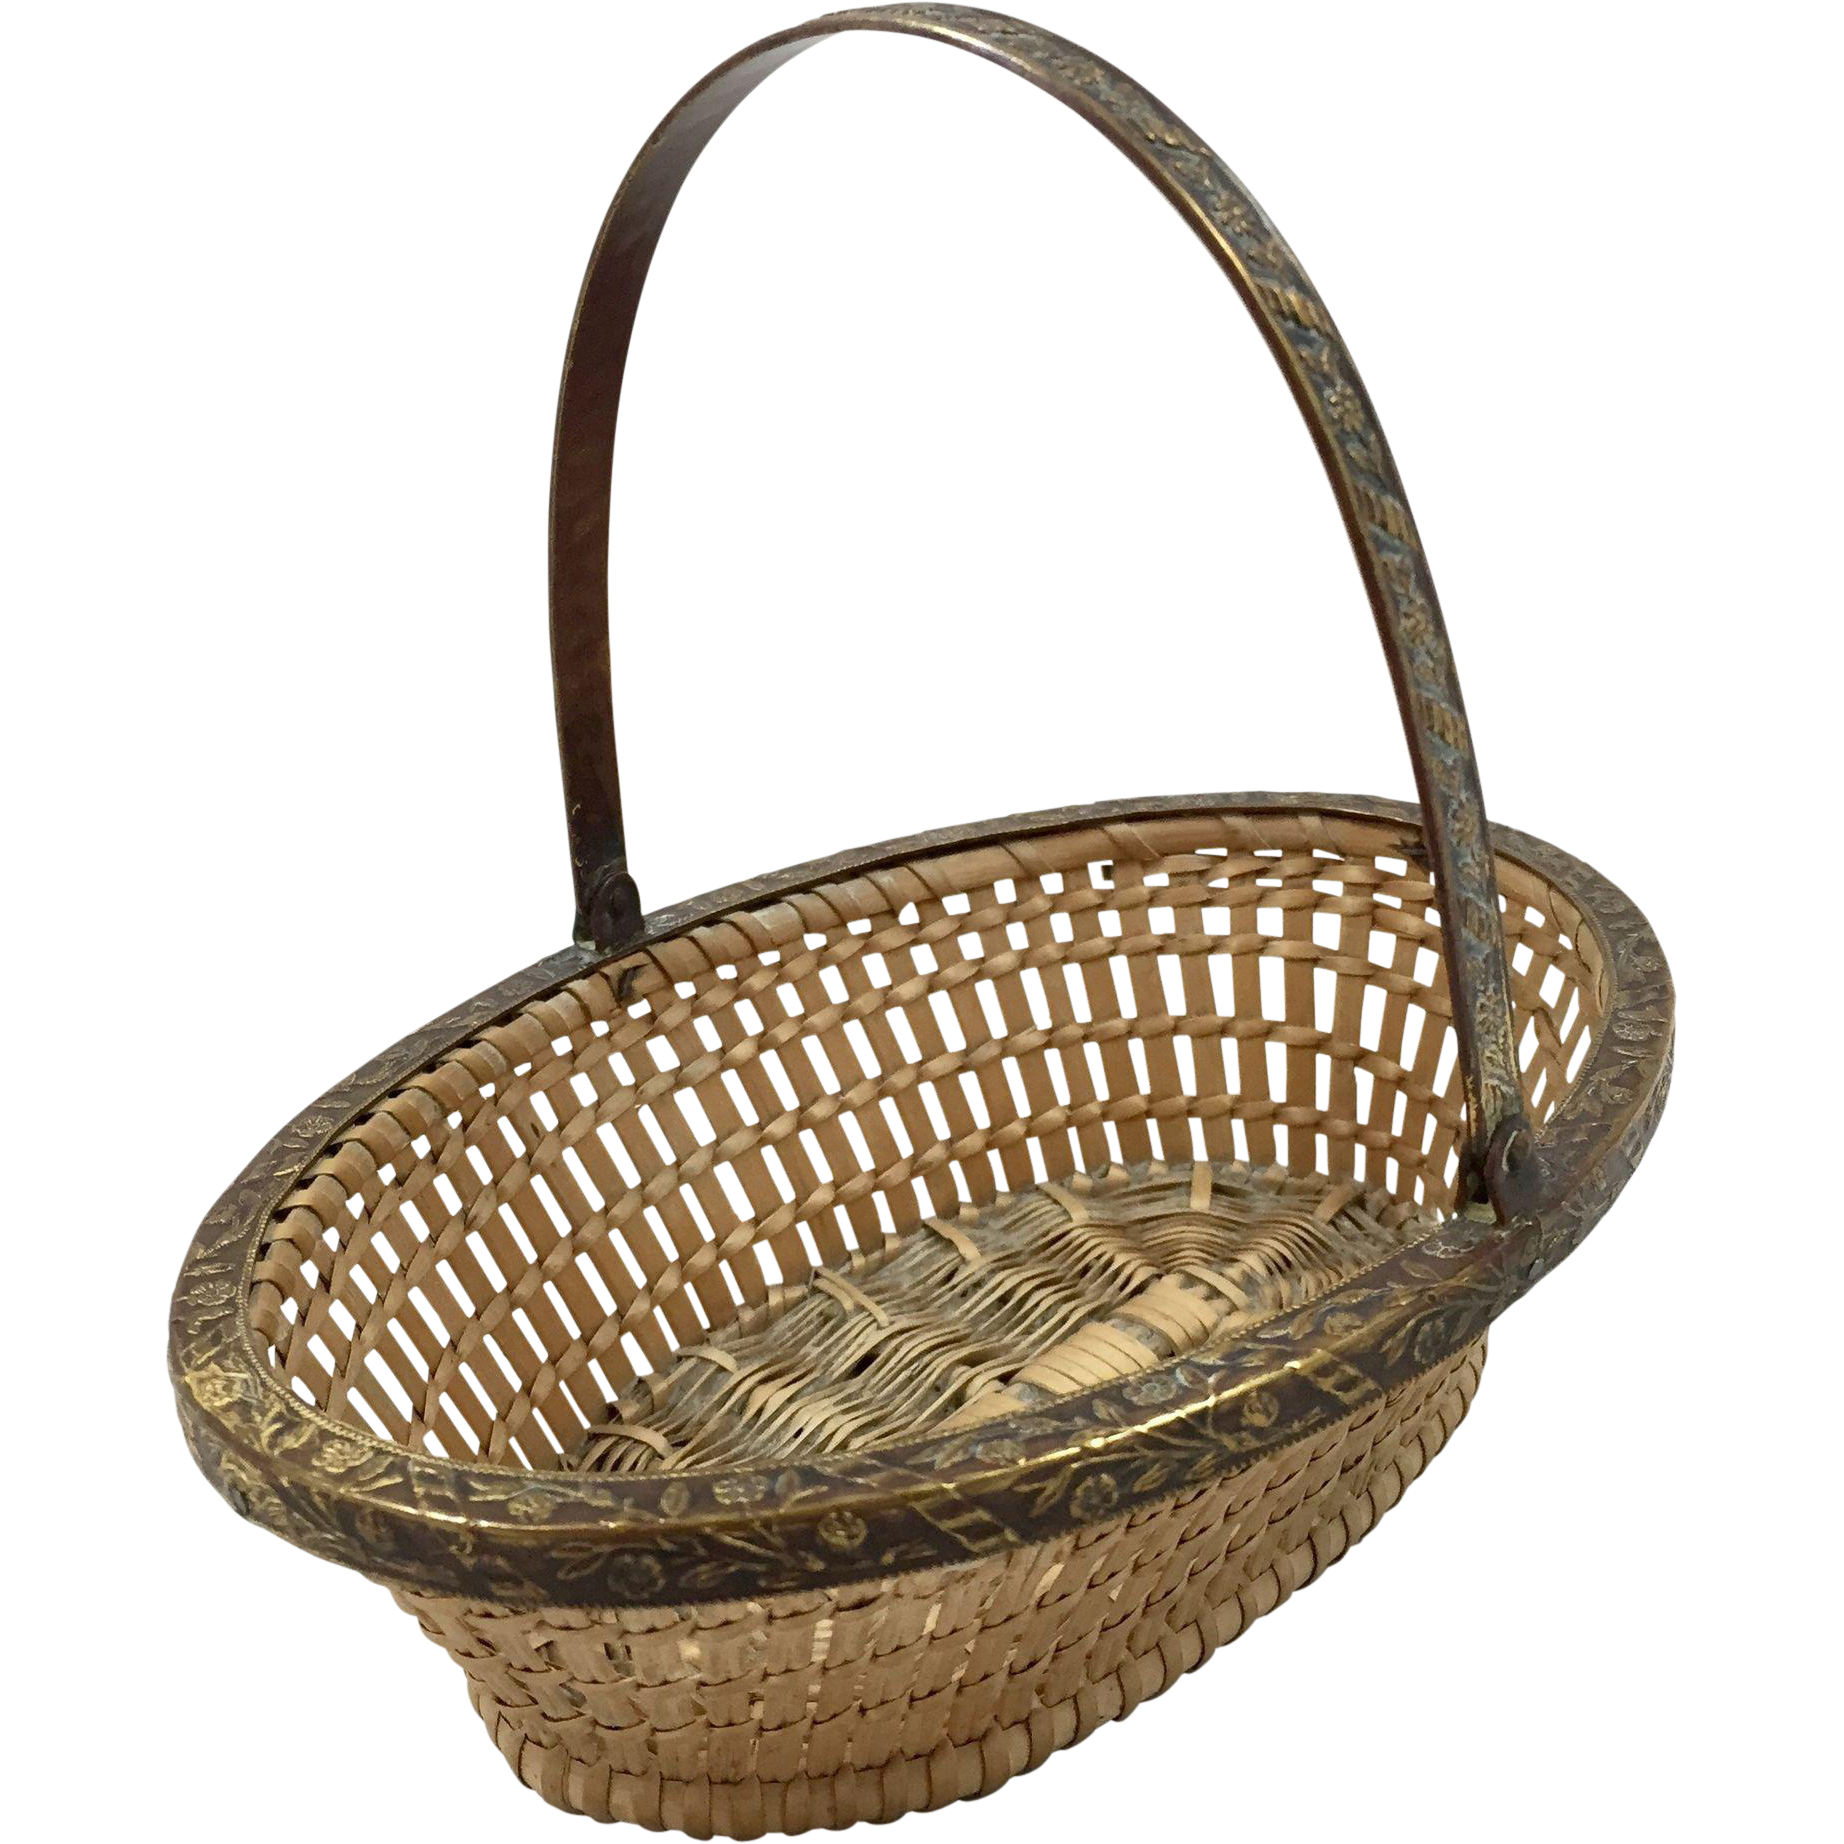 Small French Wicker Work Basket from Antiques of River Oaks on Ruby Lane $295 - Questions Call: 713-961-3333